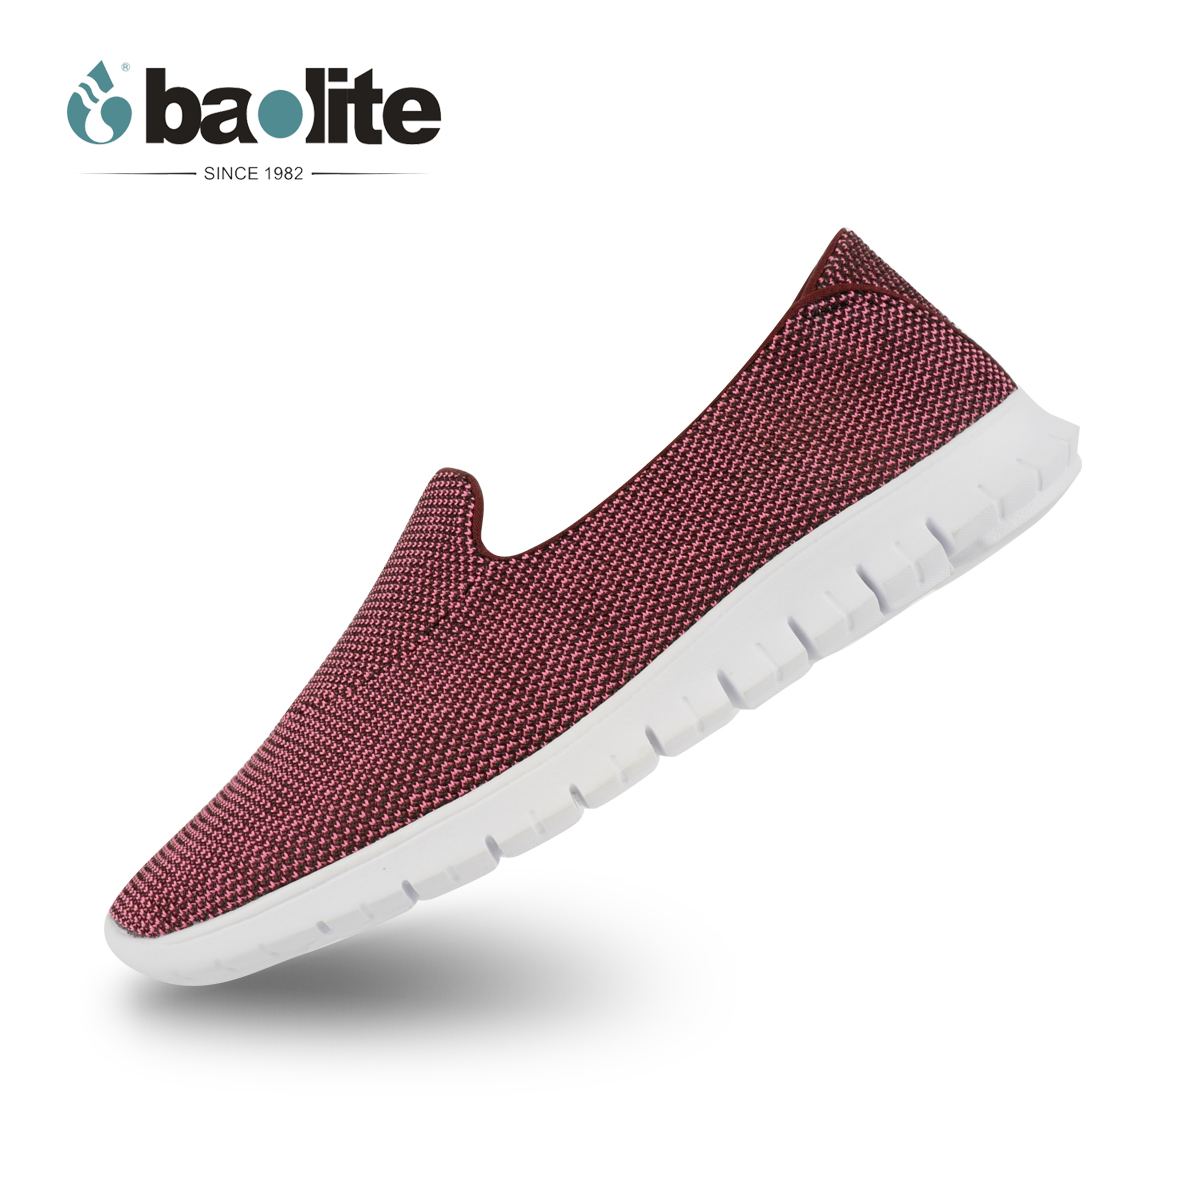 Baolite New Womens Canvas Sneakers Slip On Fashion Tennis Gore Boat Deck Shoes